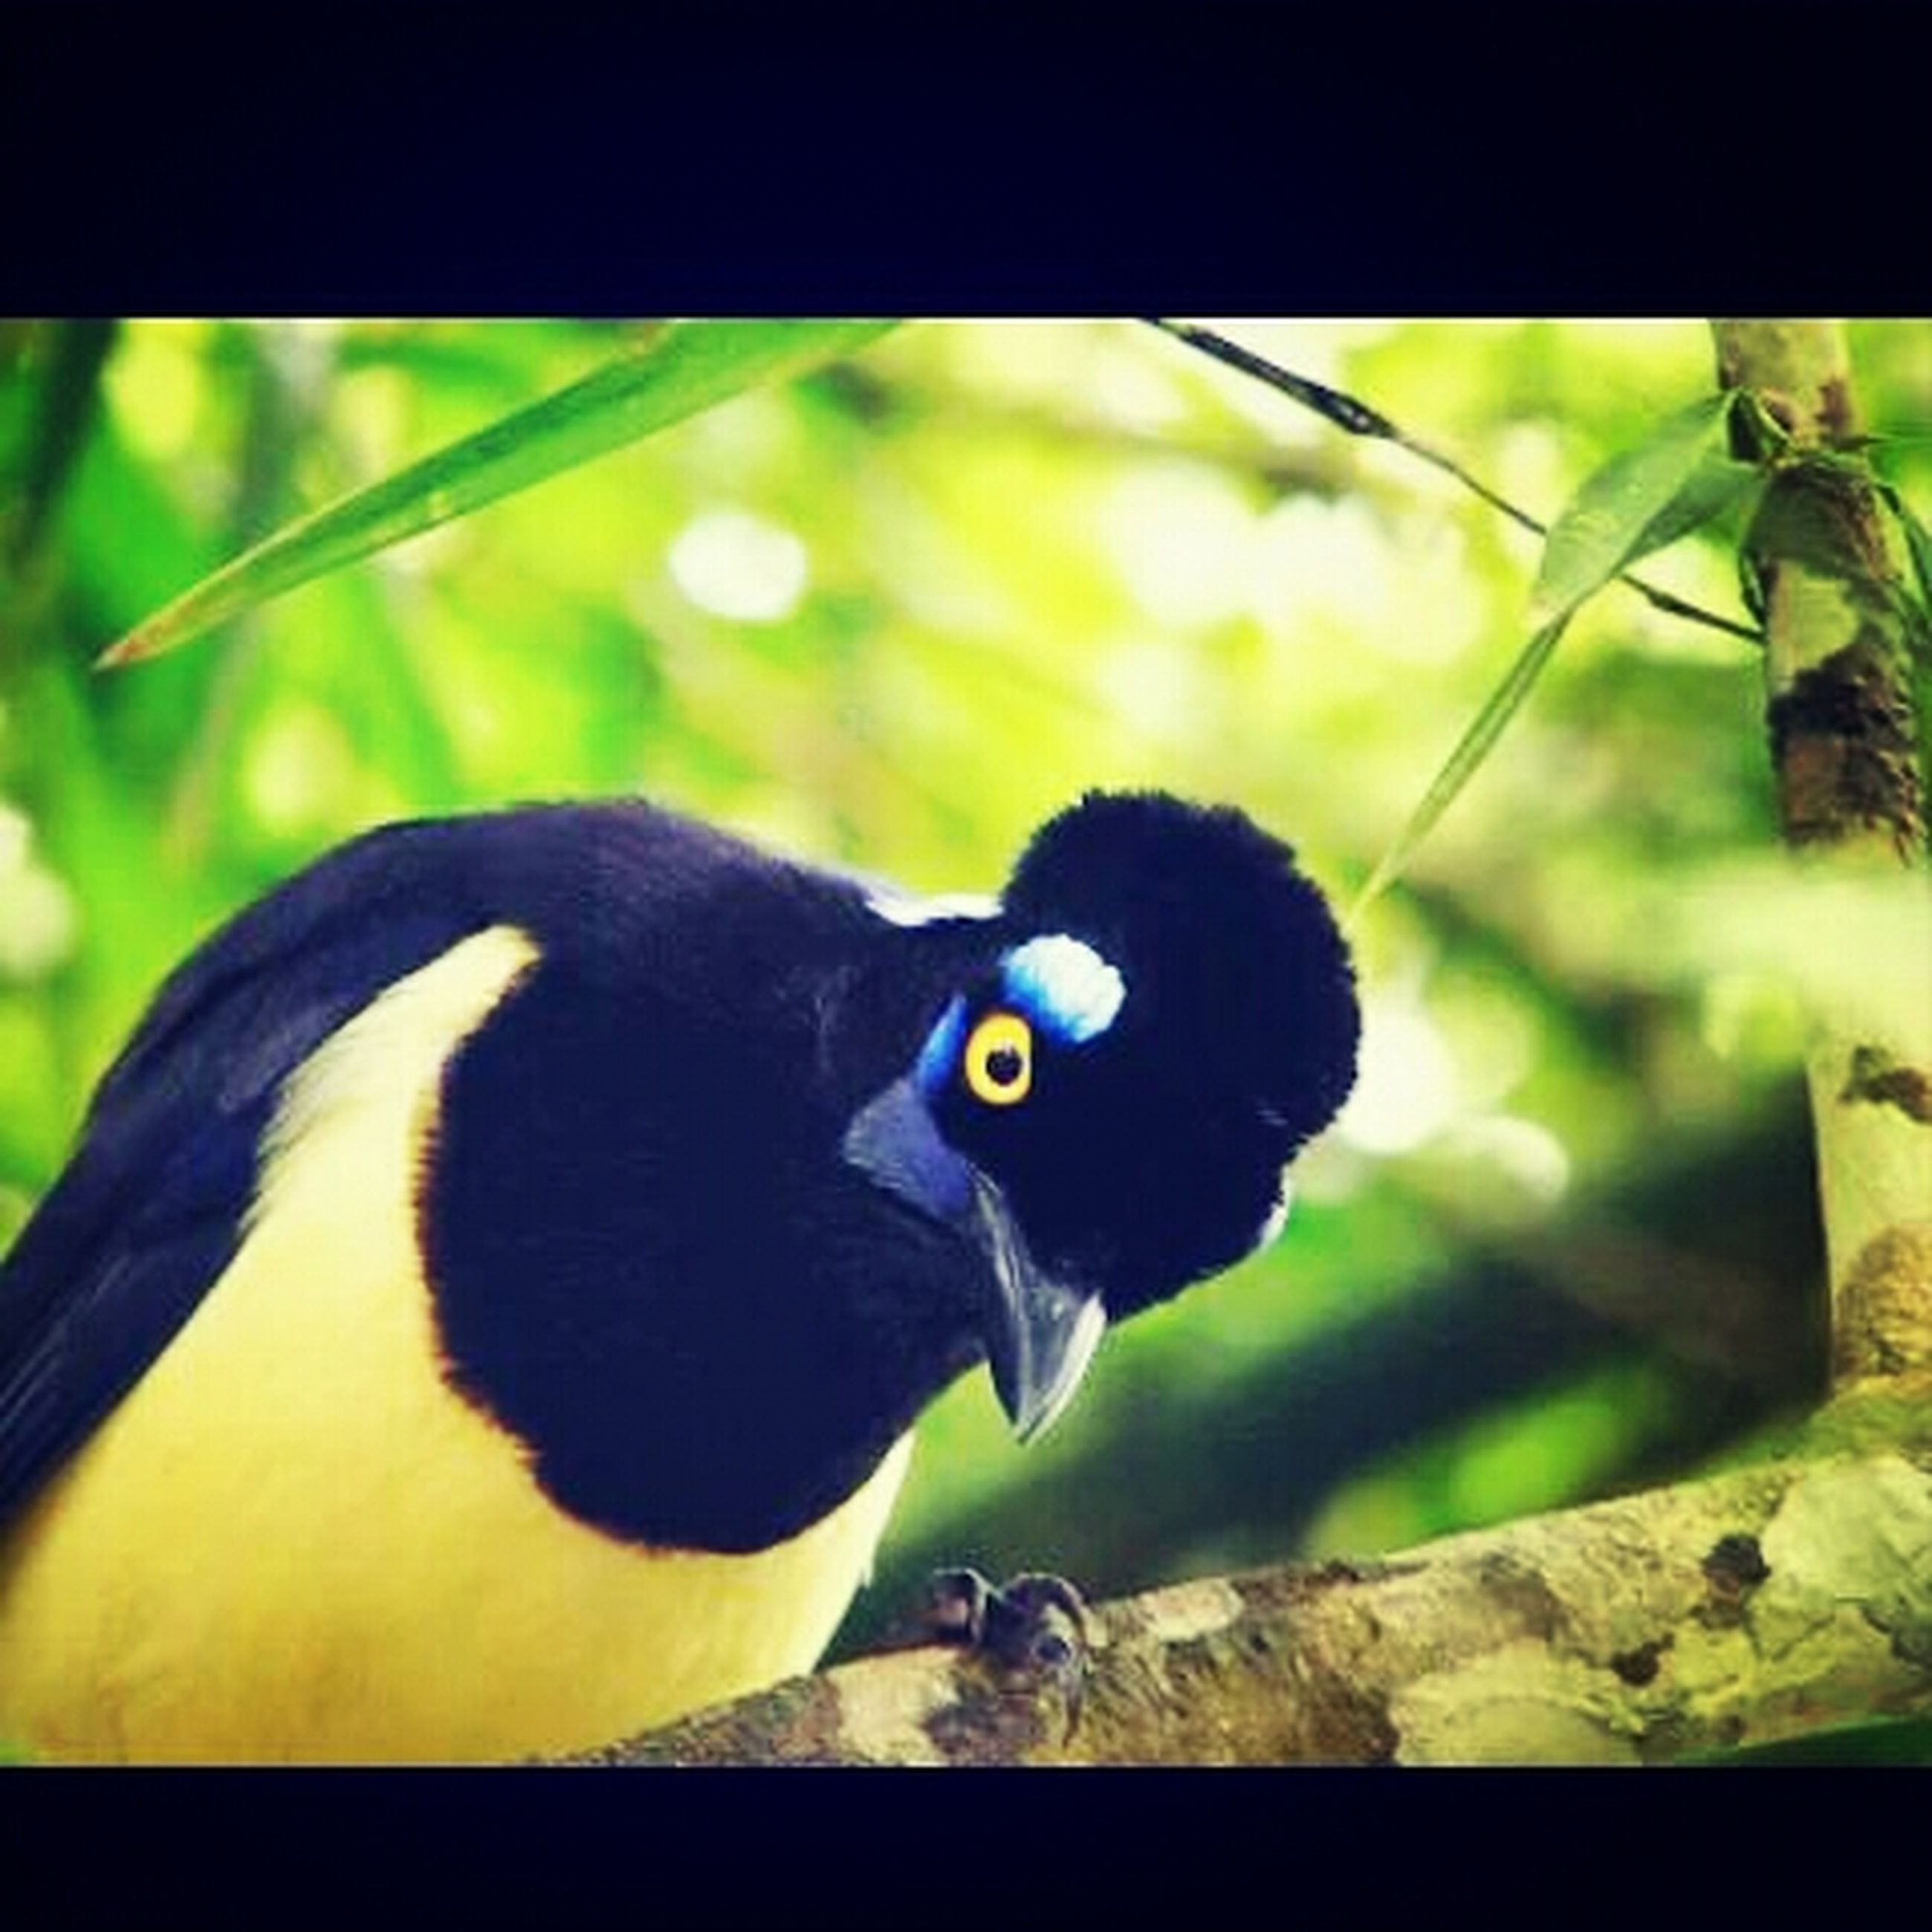 animal themes, bird, one animal, animals in the wild, close-up, black color, wildlife, focus on foreground, perching, transfer print, green color, beak, looking at camera, nature, auto post production filter, branch, outdoors, portrait, no people, pigeon